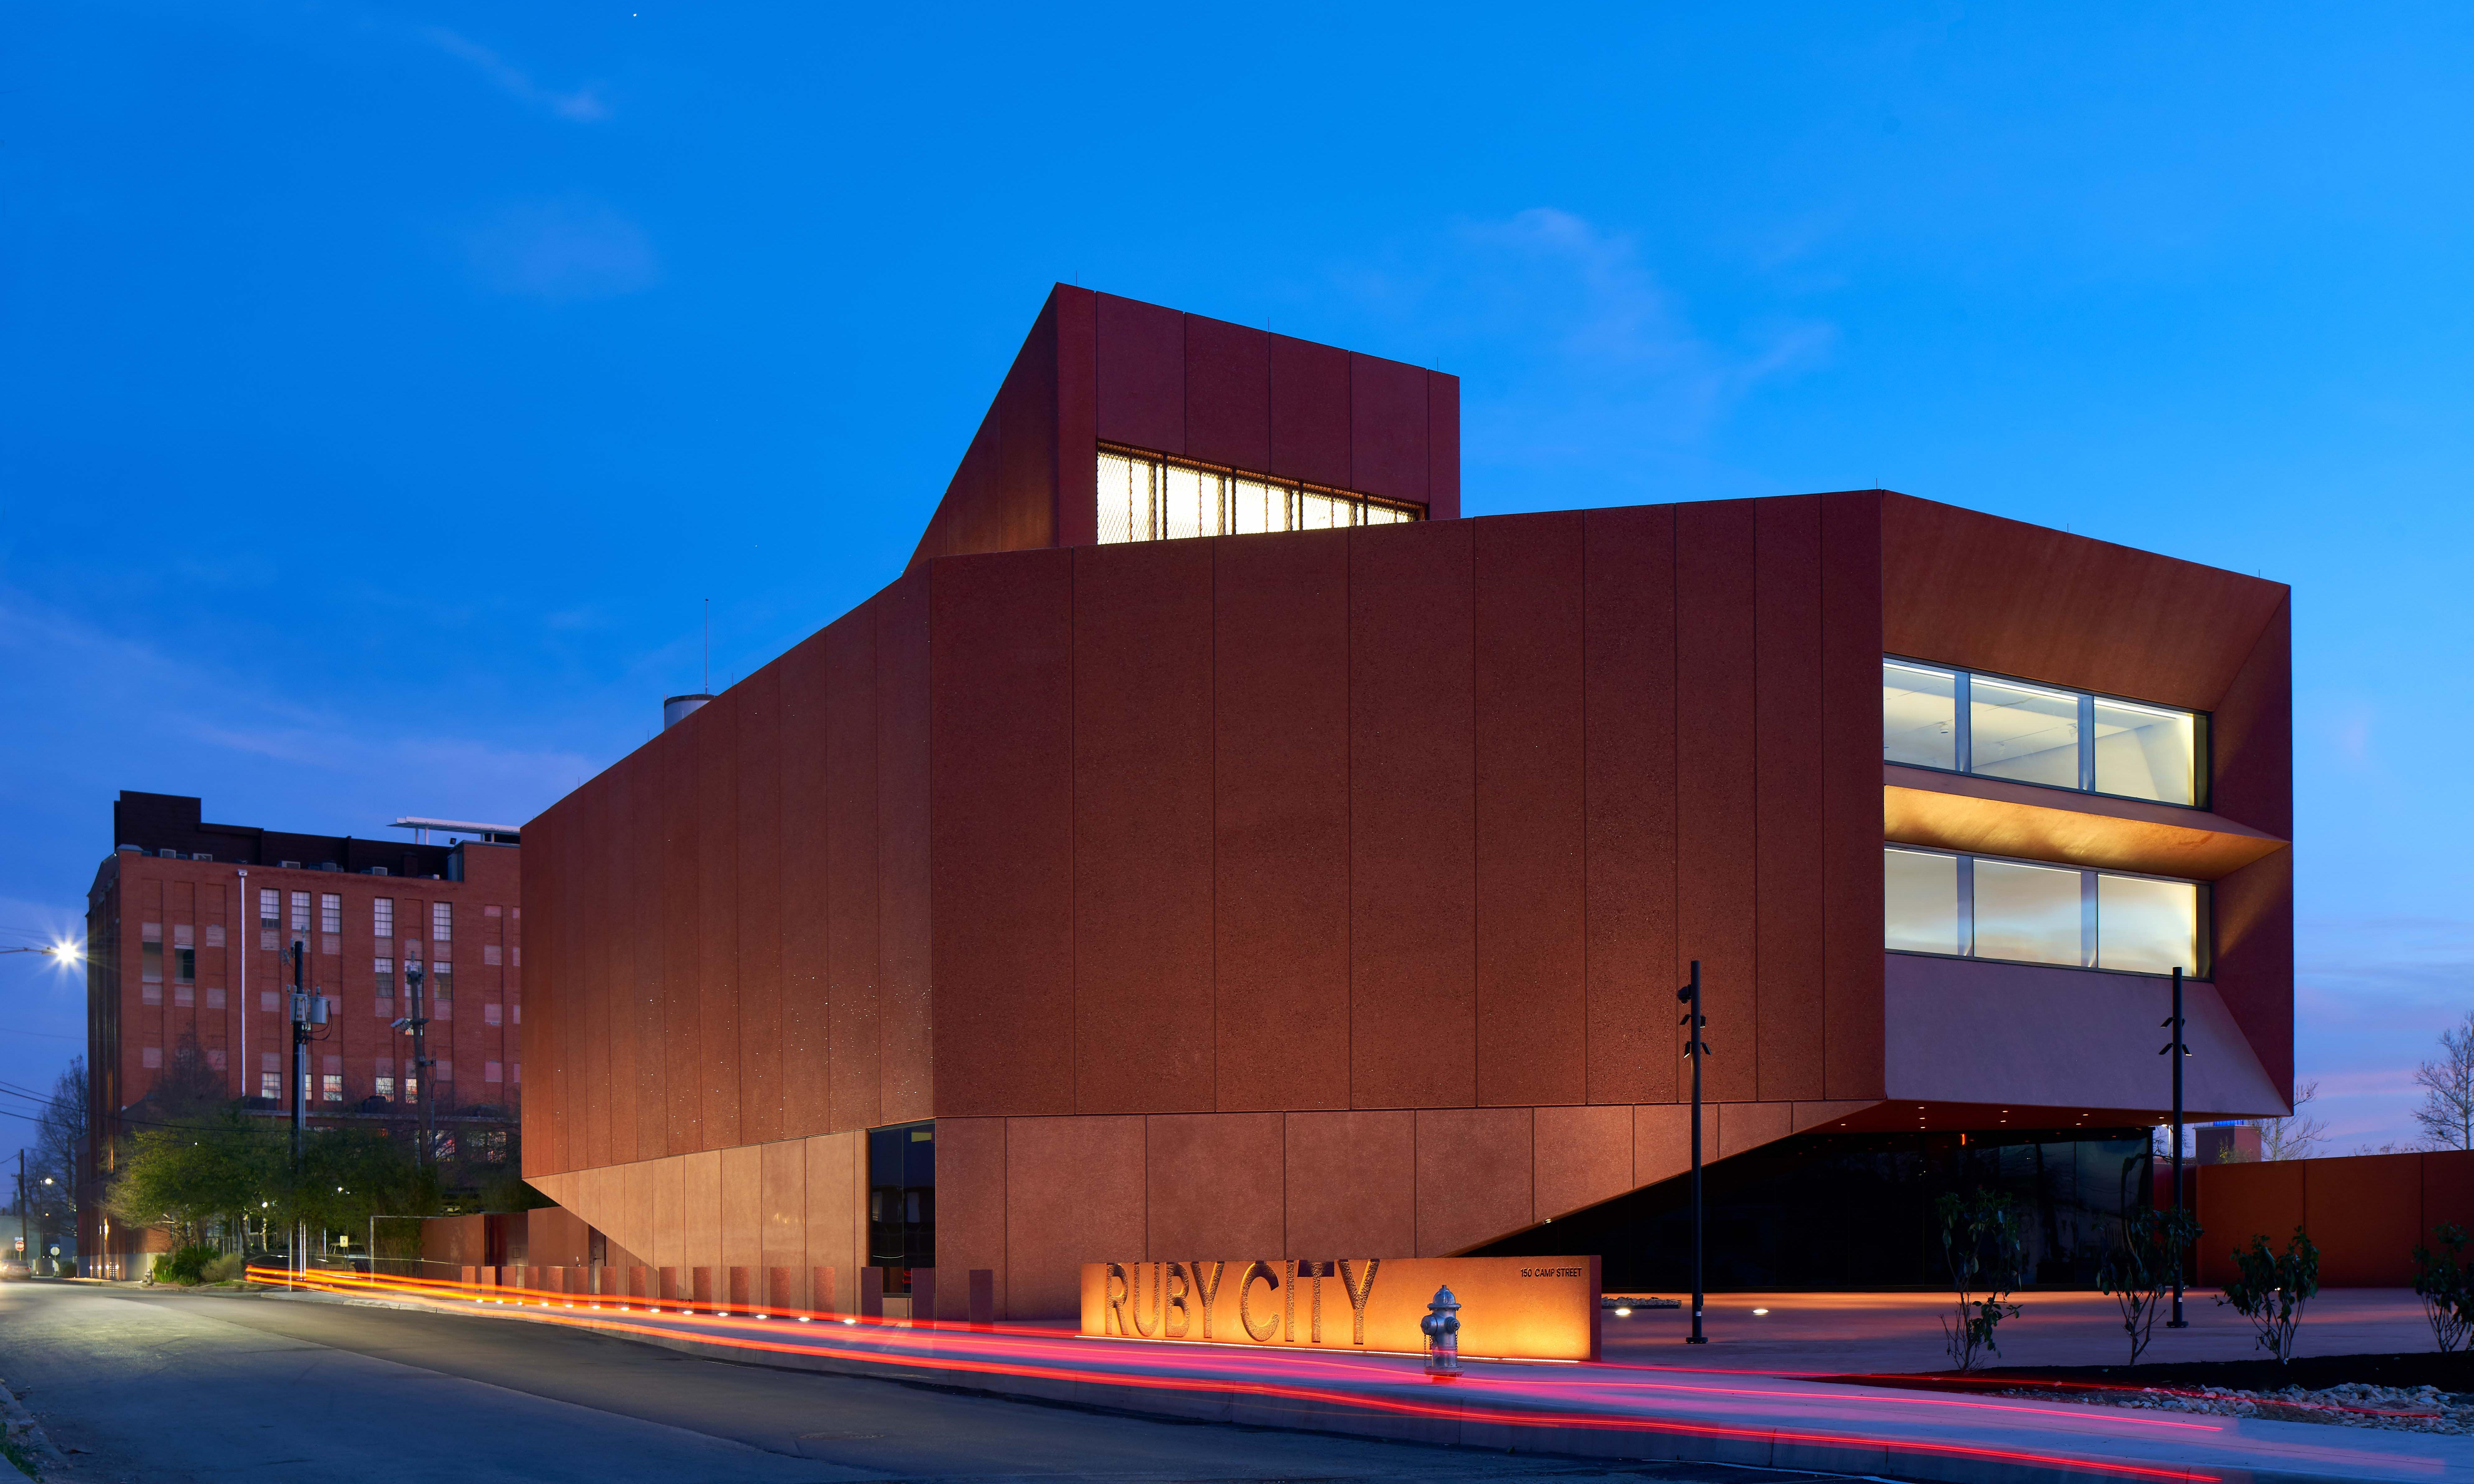 David Adjaye: 'Love, death and memory… it's all in a building's DNA'